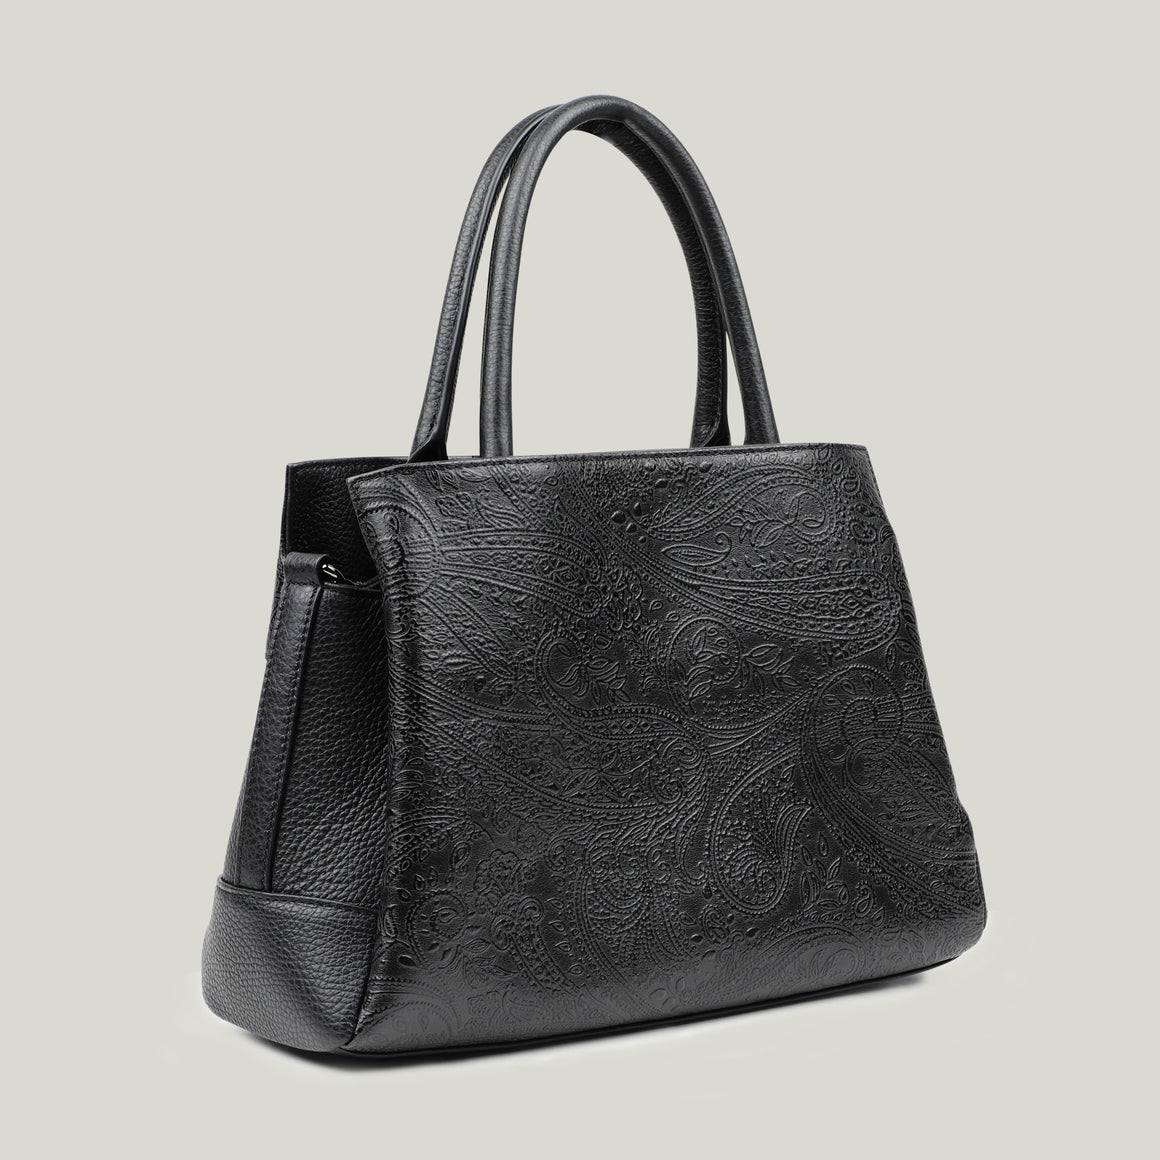 Handbag Sleek Surprise Black - Dminimis